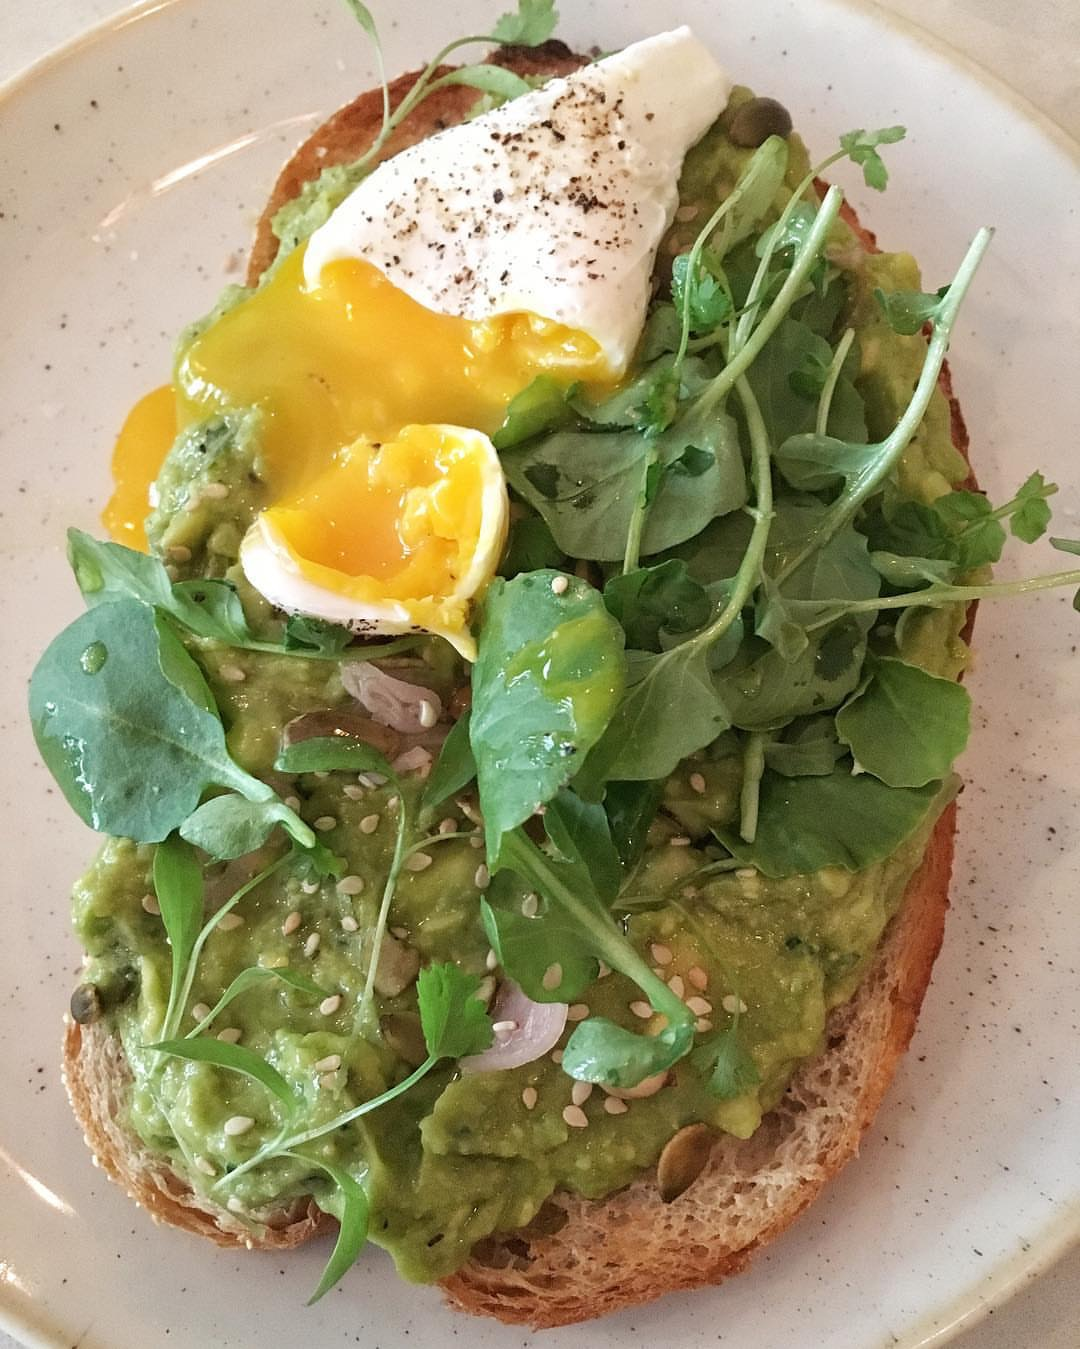 Smashed avocado on sourdough with charred scallions, jalapeño, cilantro, pepitas, lime and a poached egg on top